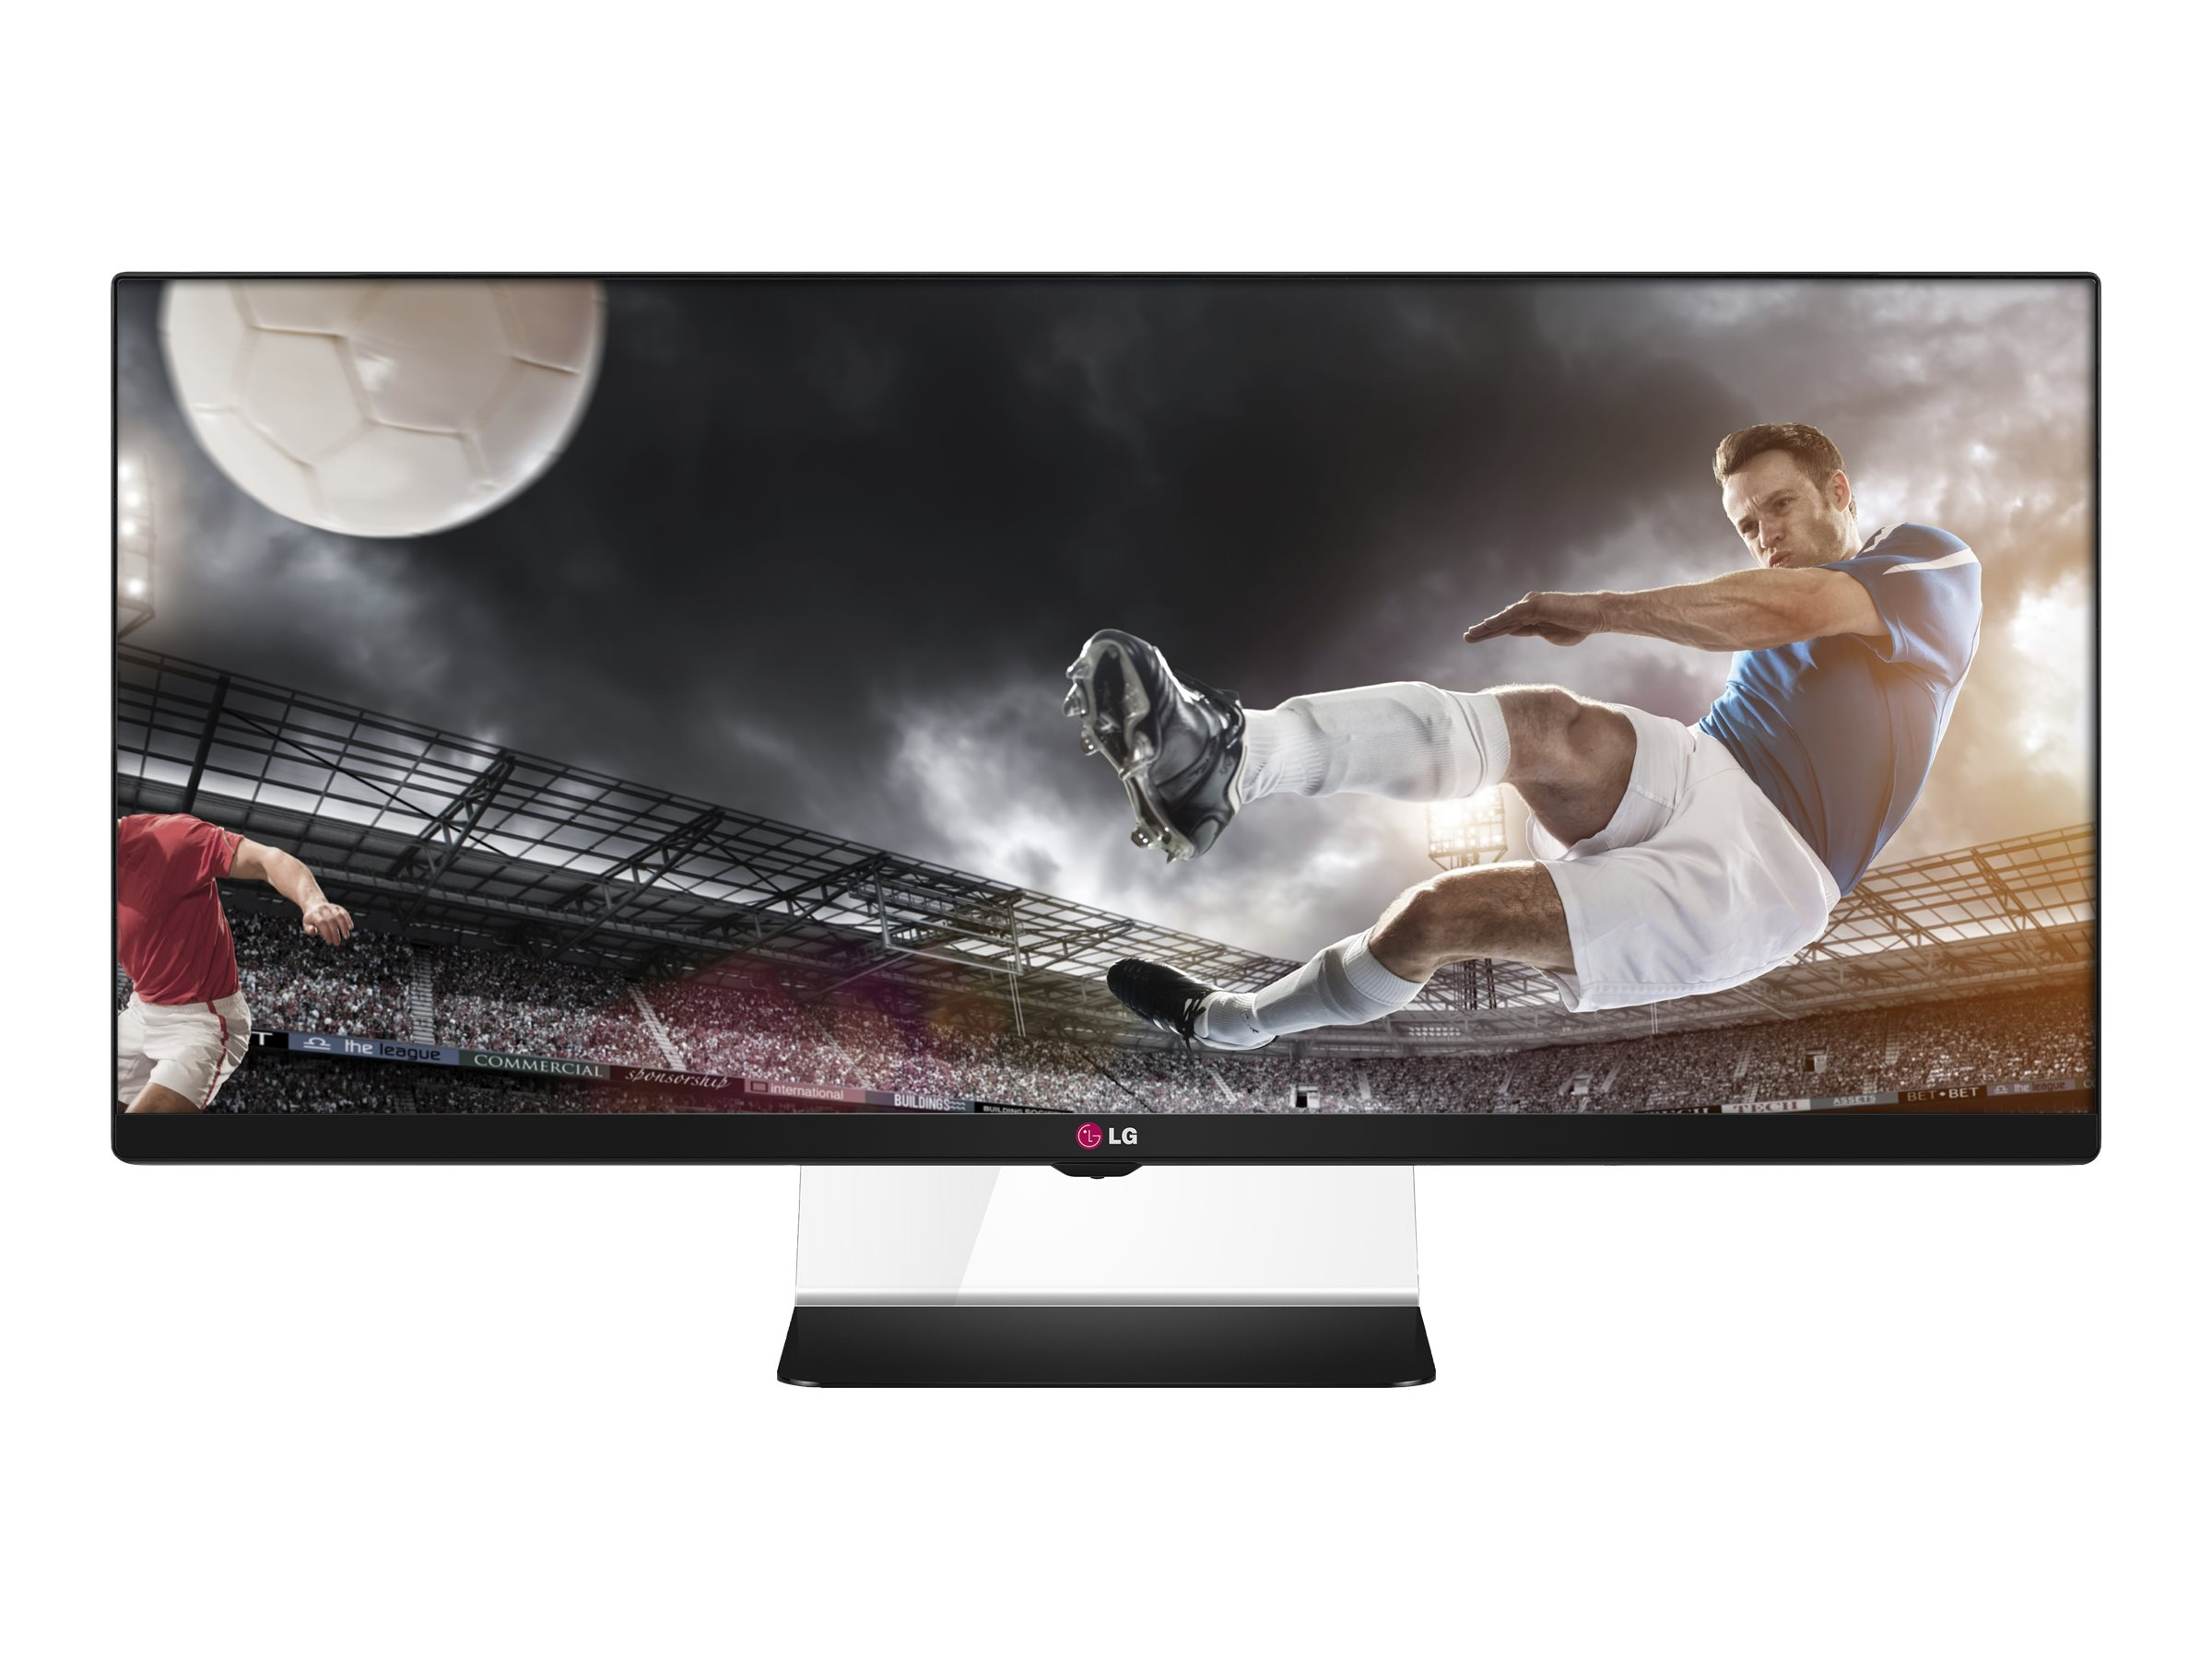 LG 34 UM64-P Full HD LED-LCD Ultrawide Monitor, Black, 34UM64-P